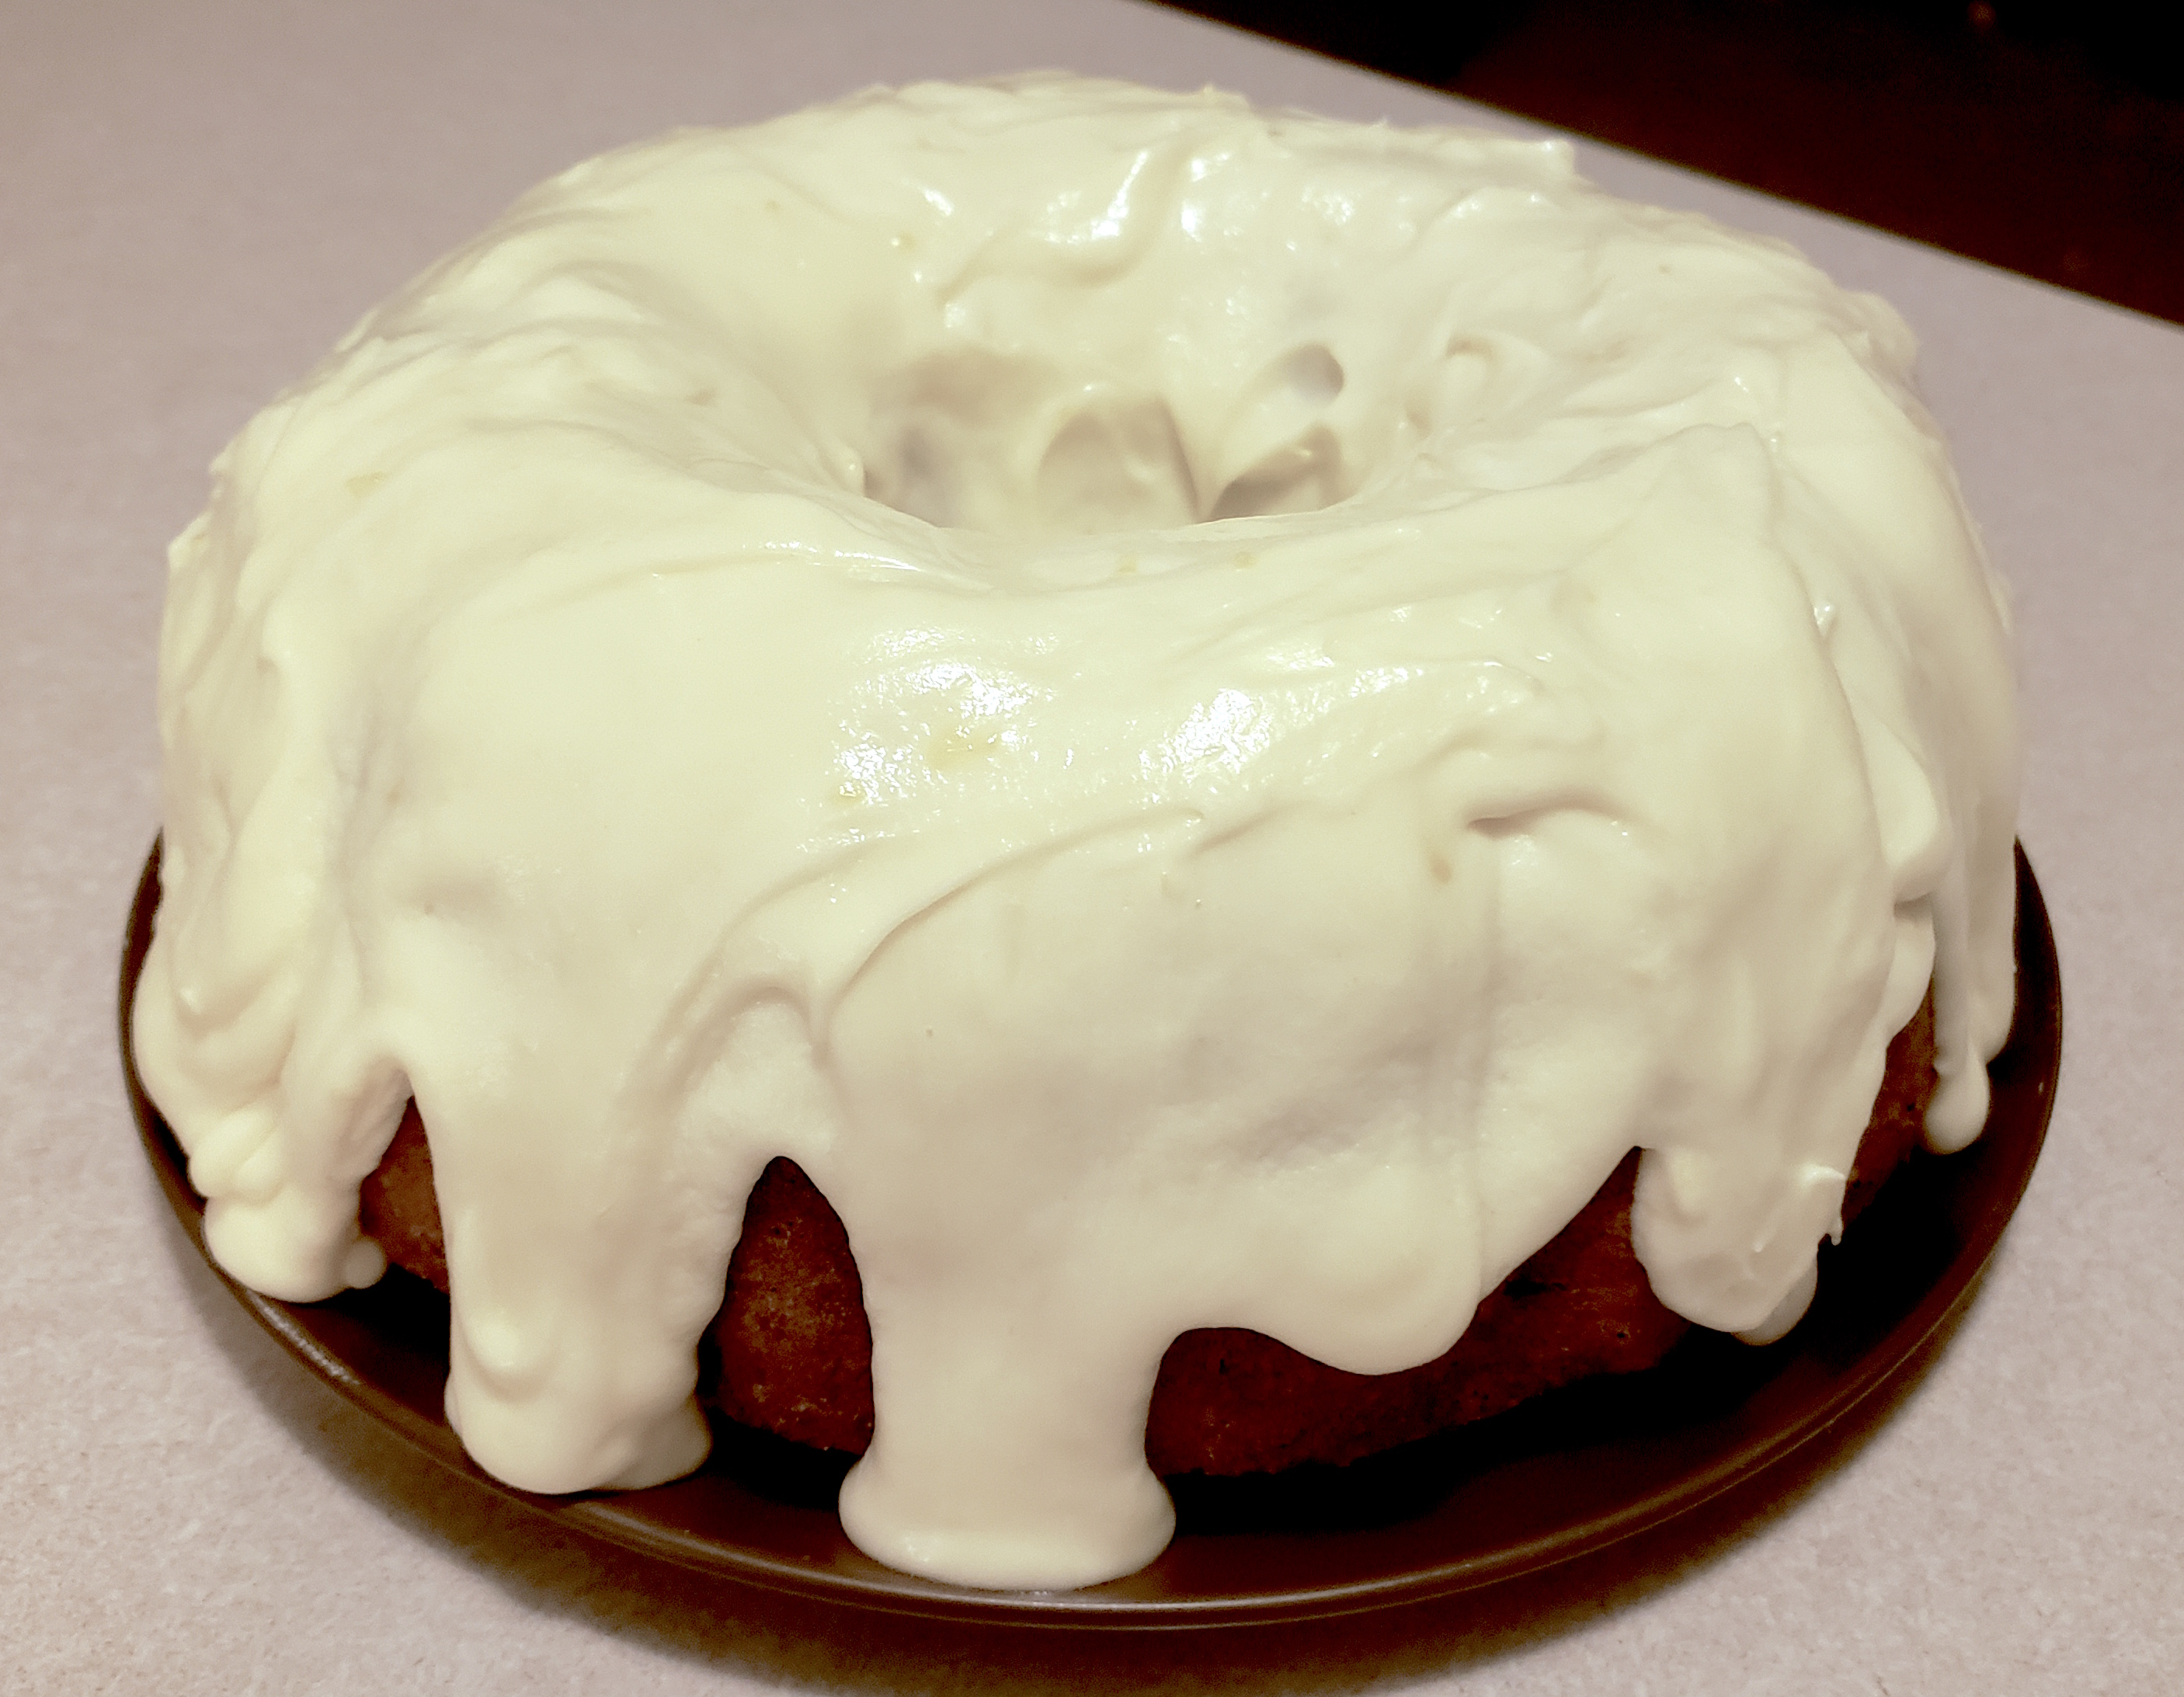 Carrot Cake with Cream Cheese Icing from Egg Farmers of Ontario Jimbo